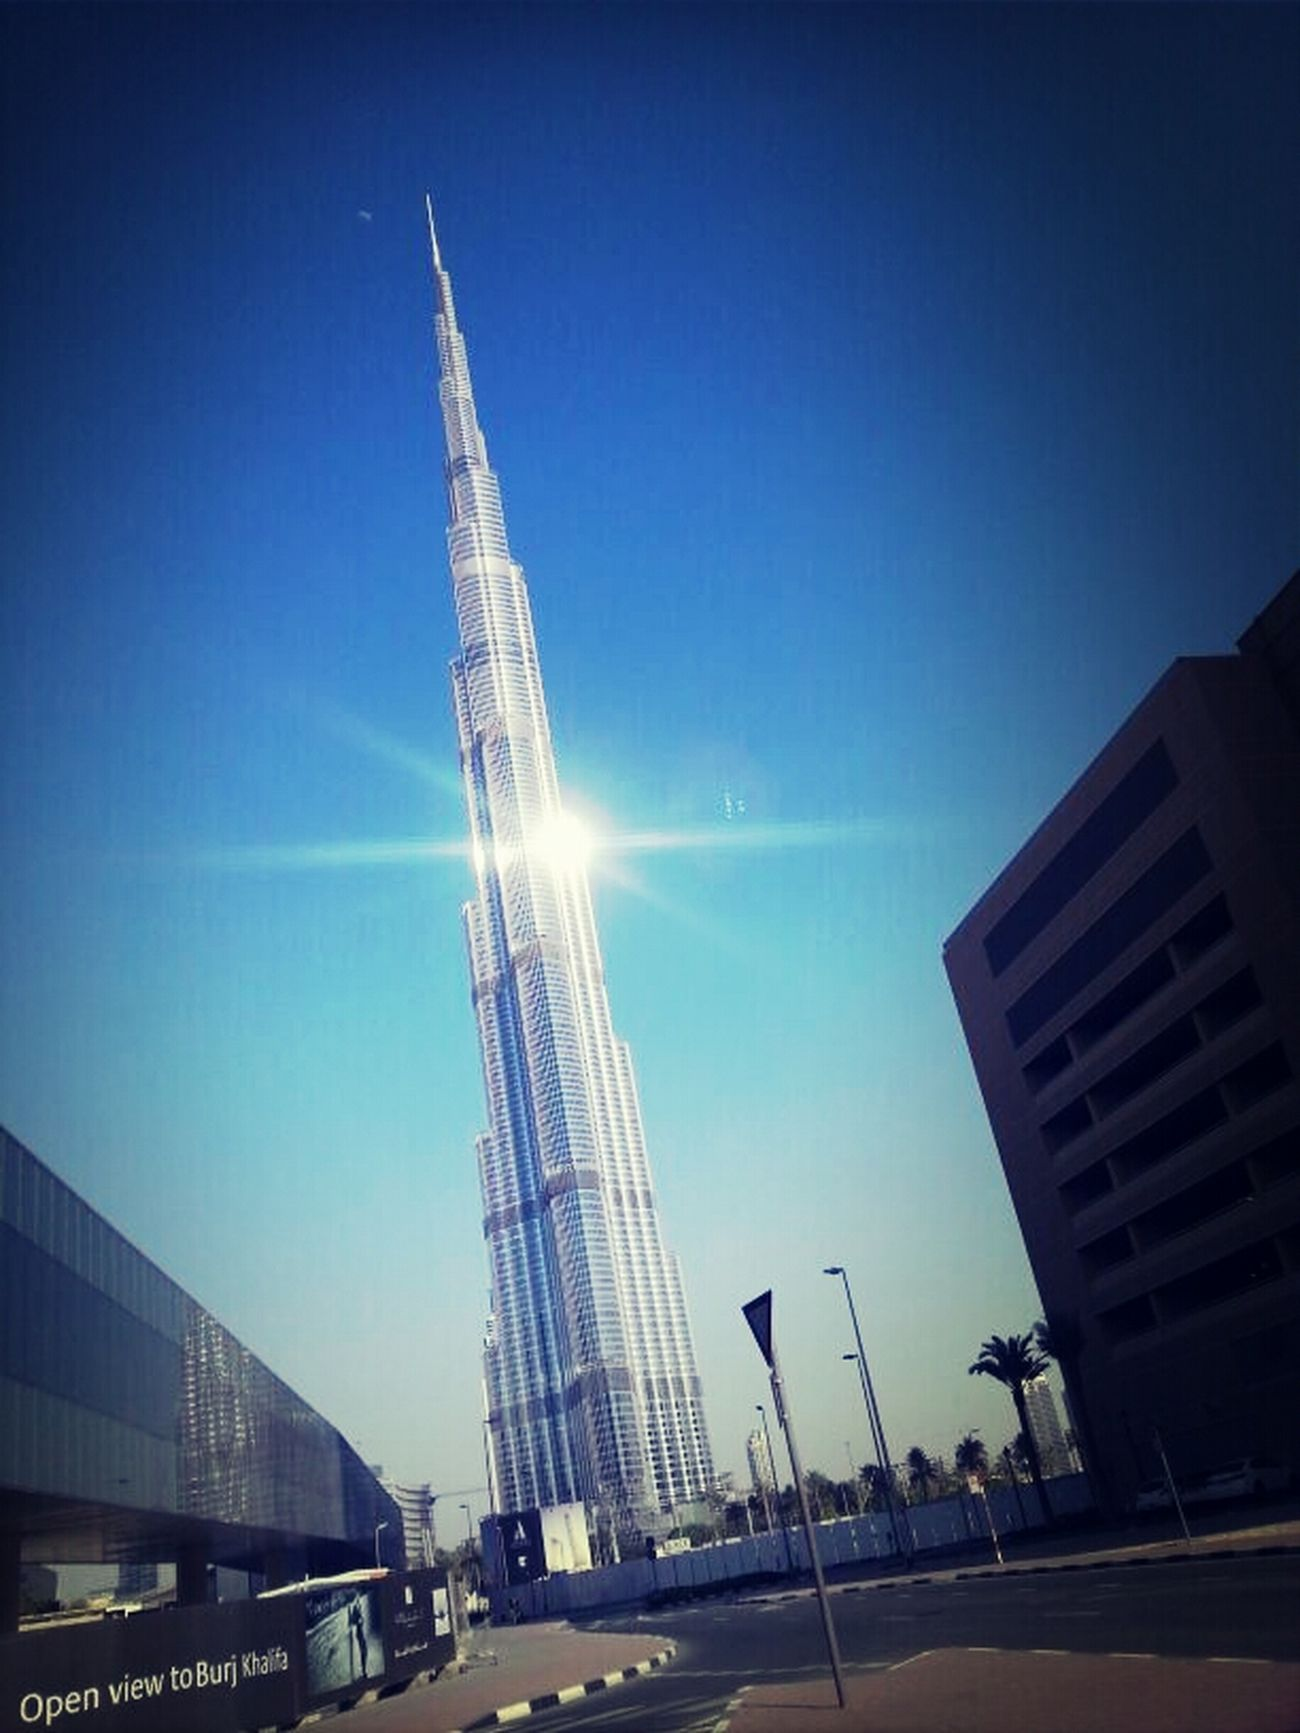 Theburjkhalifa All Roads Lead To The Divine Taking PhotosOpenview